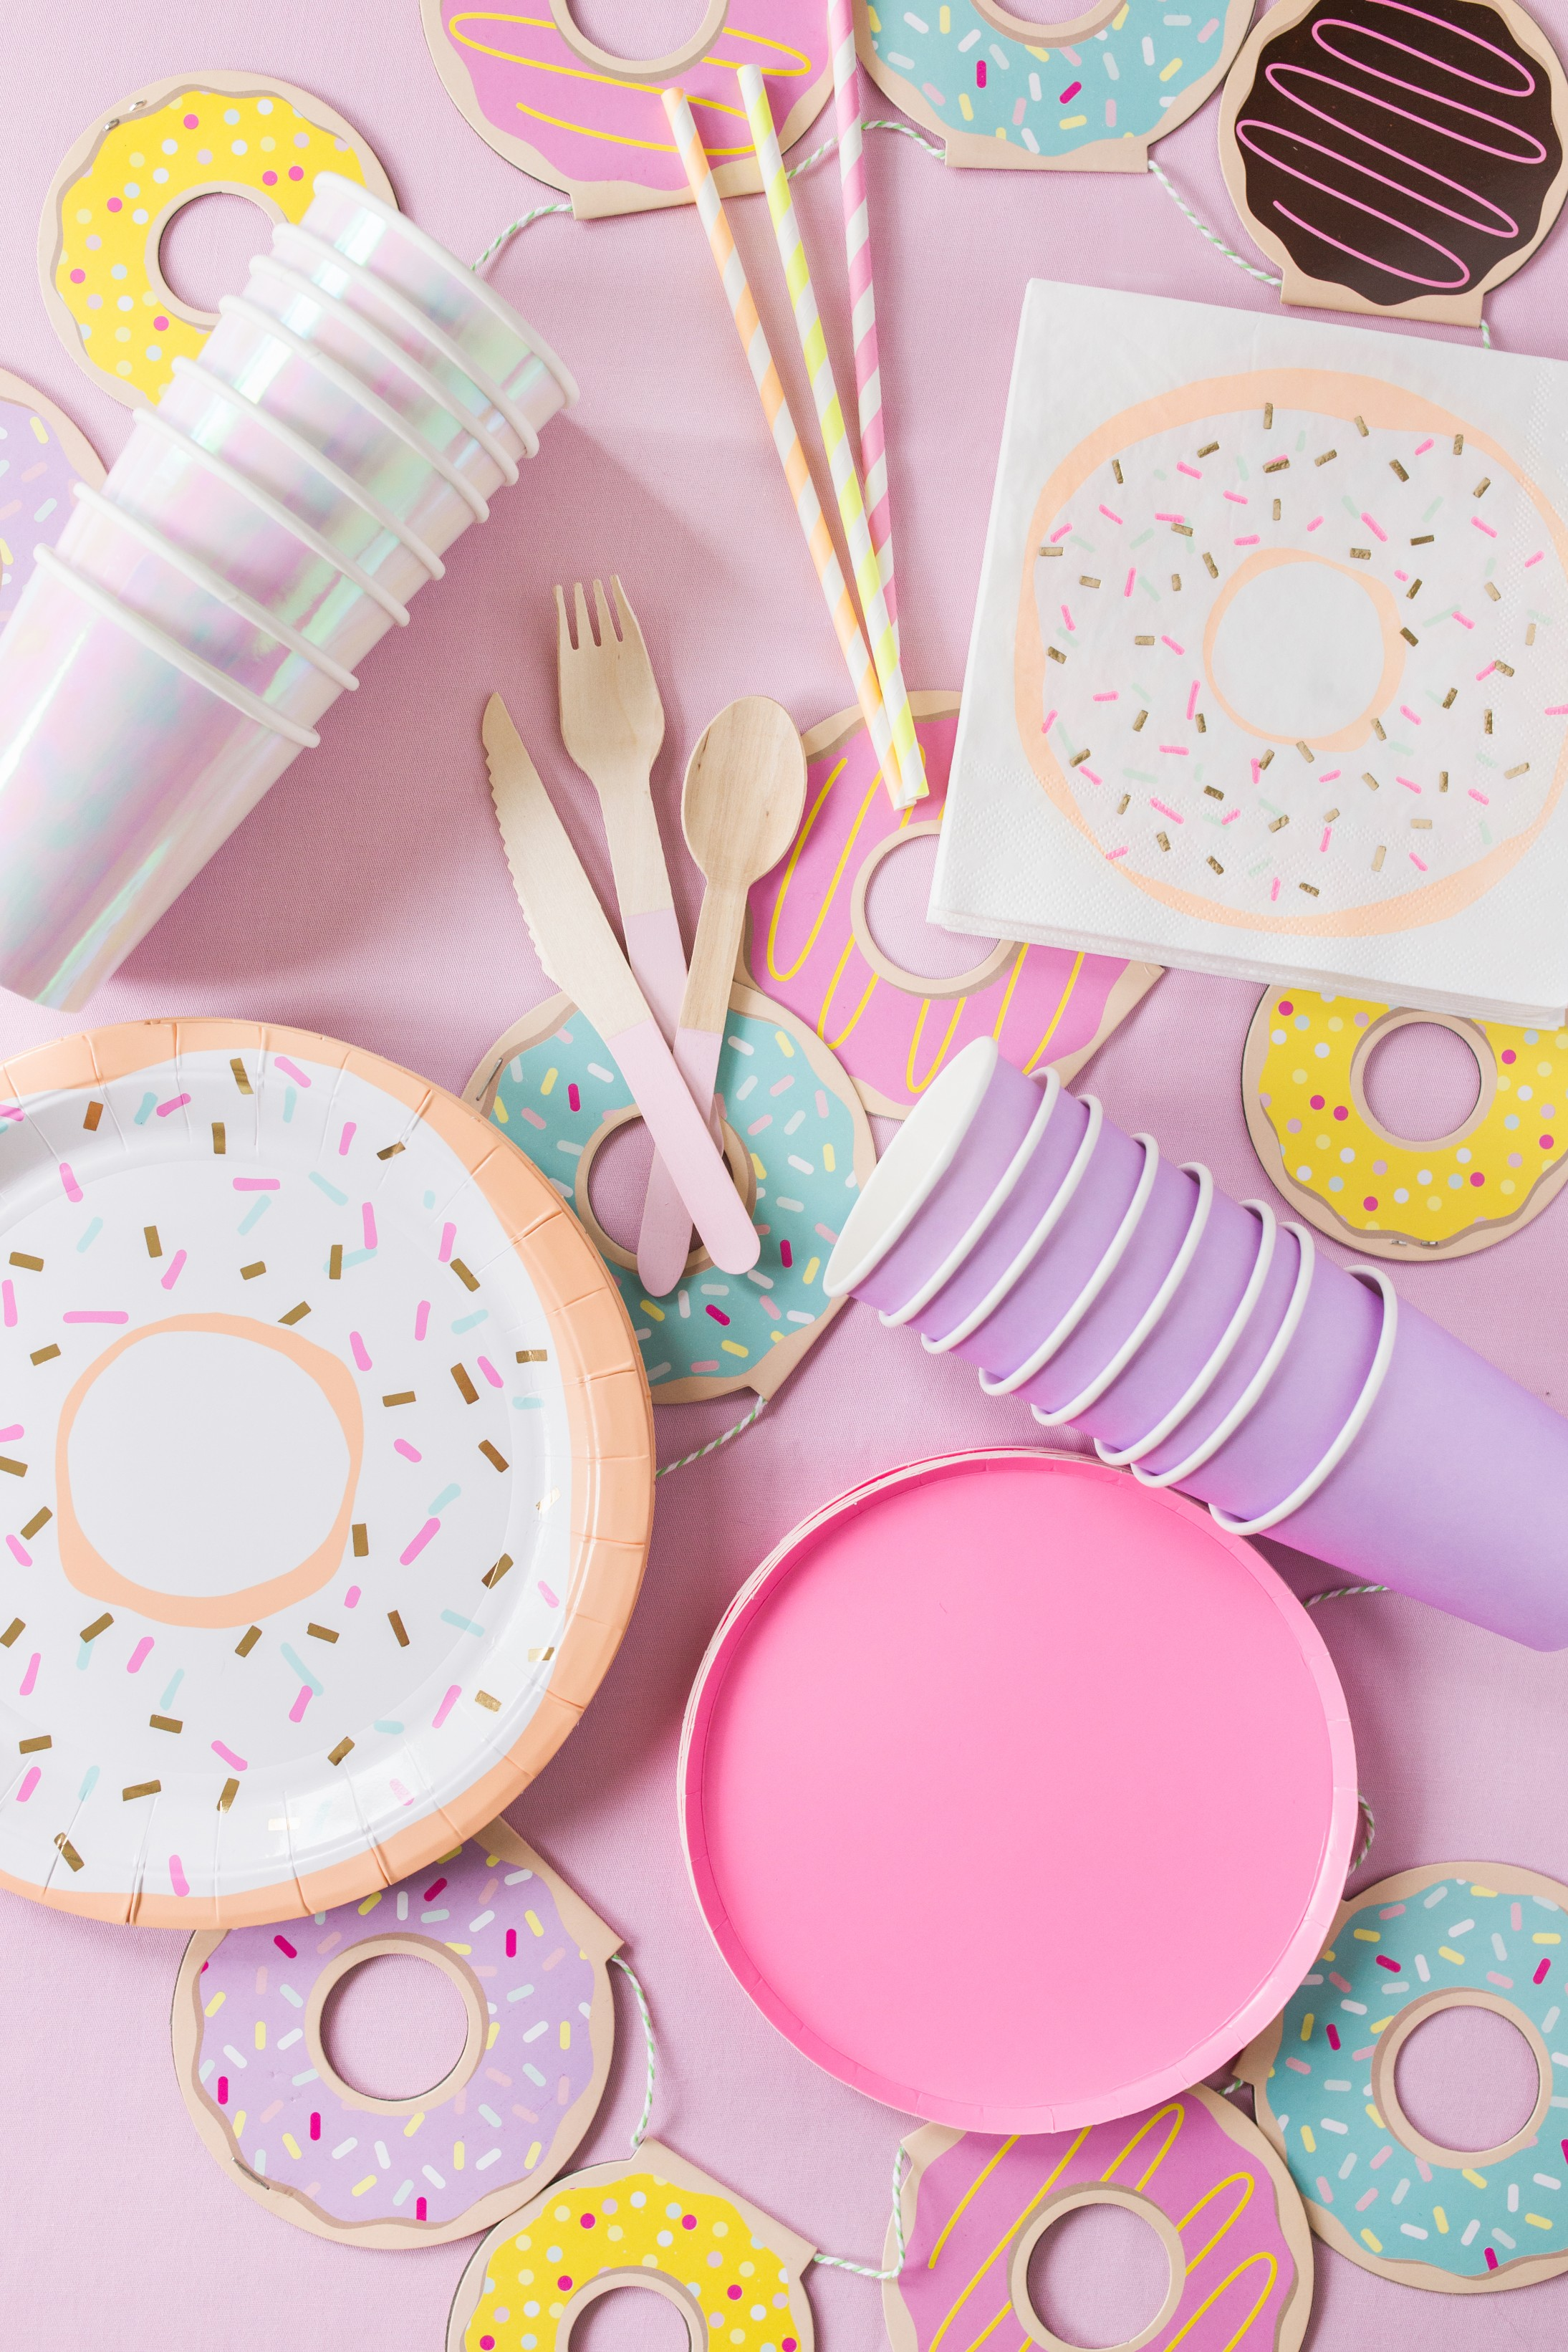 Go Nuts For Donut - It's a donut party! Go nuts for donuts with everything you'll need for the perfect donut celebration.Each Donut kit is perfect for parties with up to 24 party guests.Life's short – eat the donut!